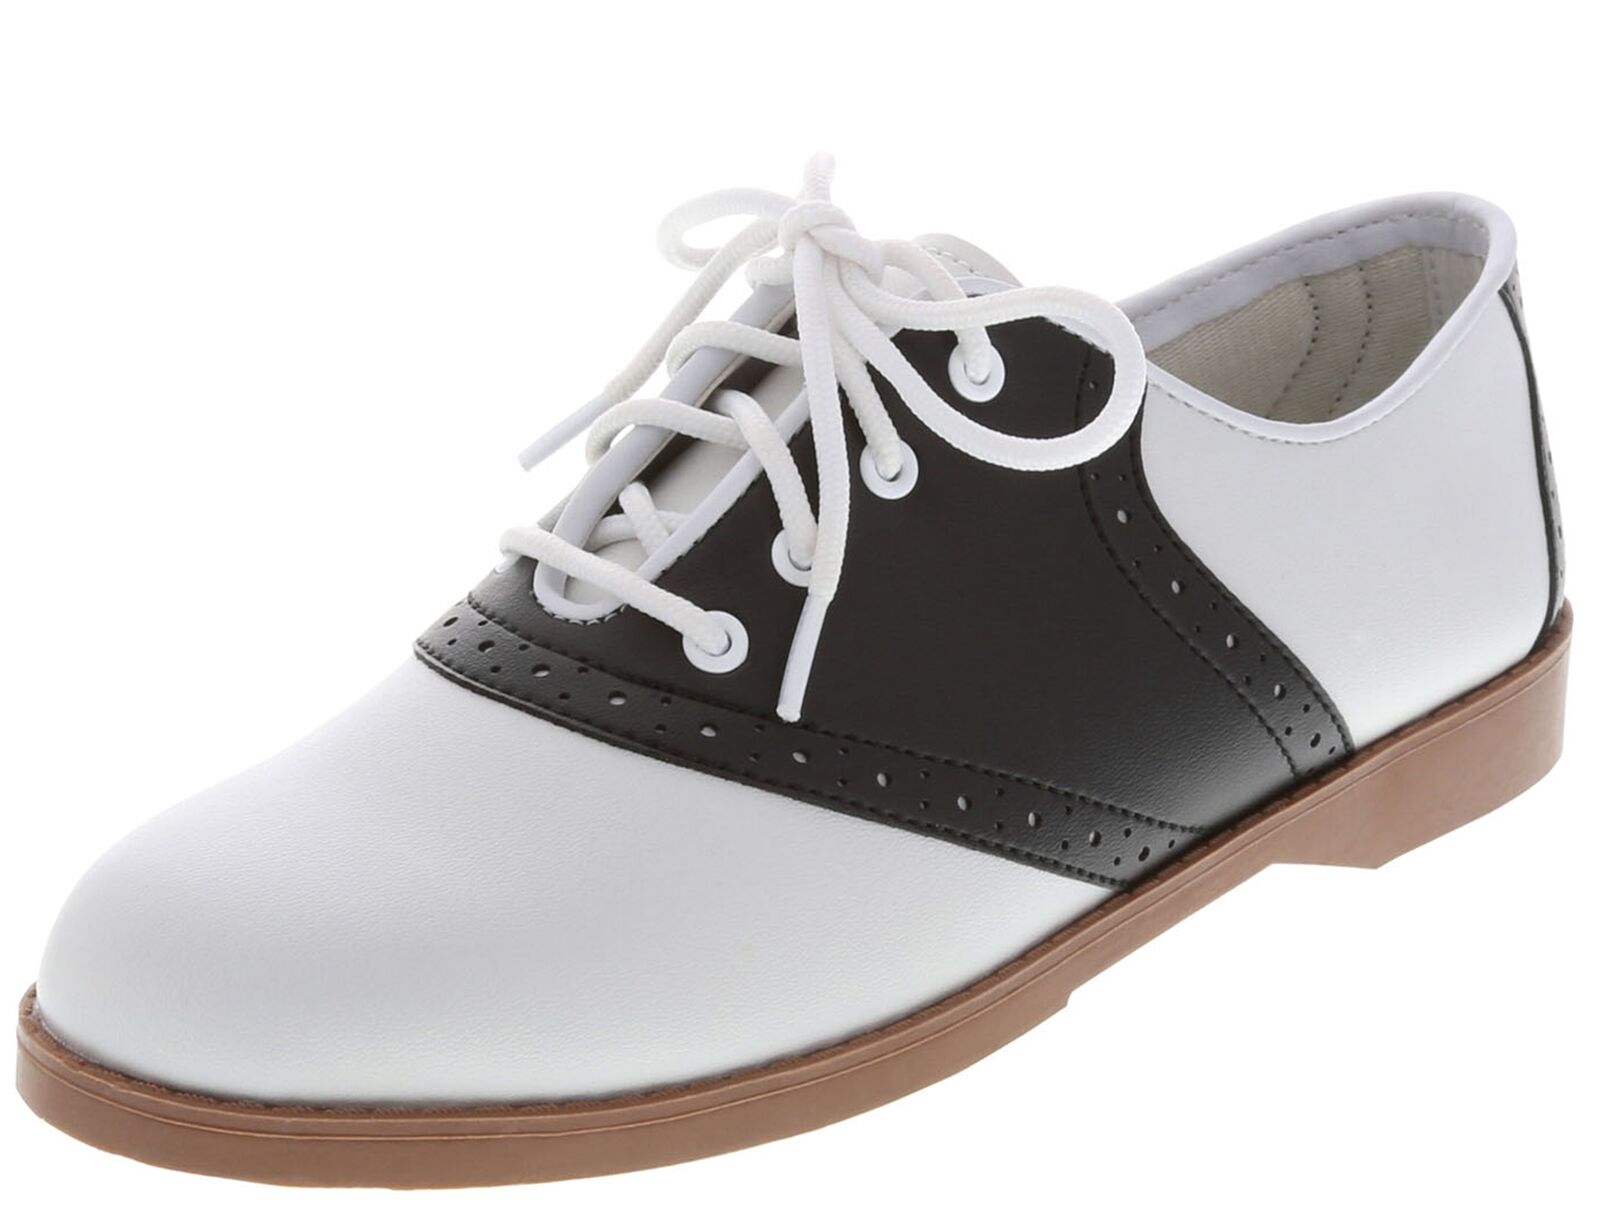 WOMENS CLASSIC 50s STYLE BLACK AND WHITE SADDLE SHOES ~ (RUN SMALL) ~NEW IN BOX